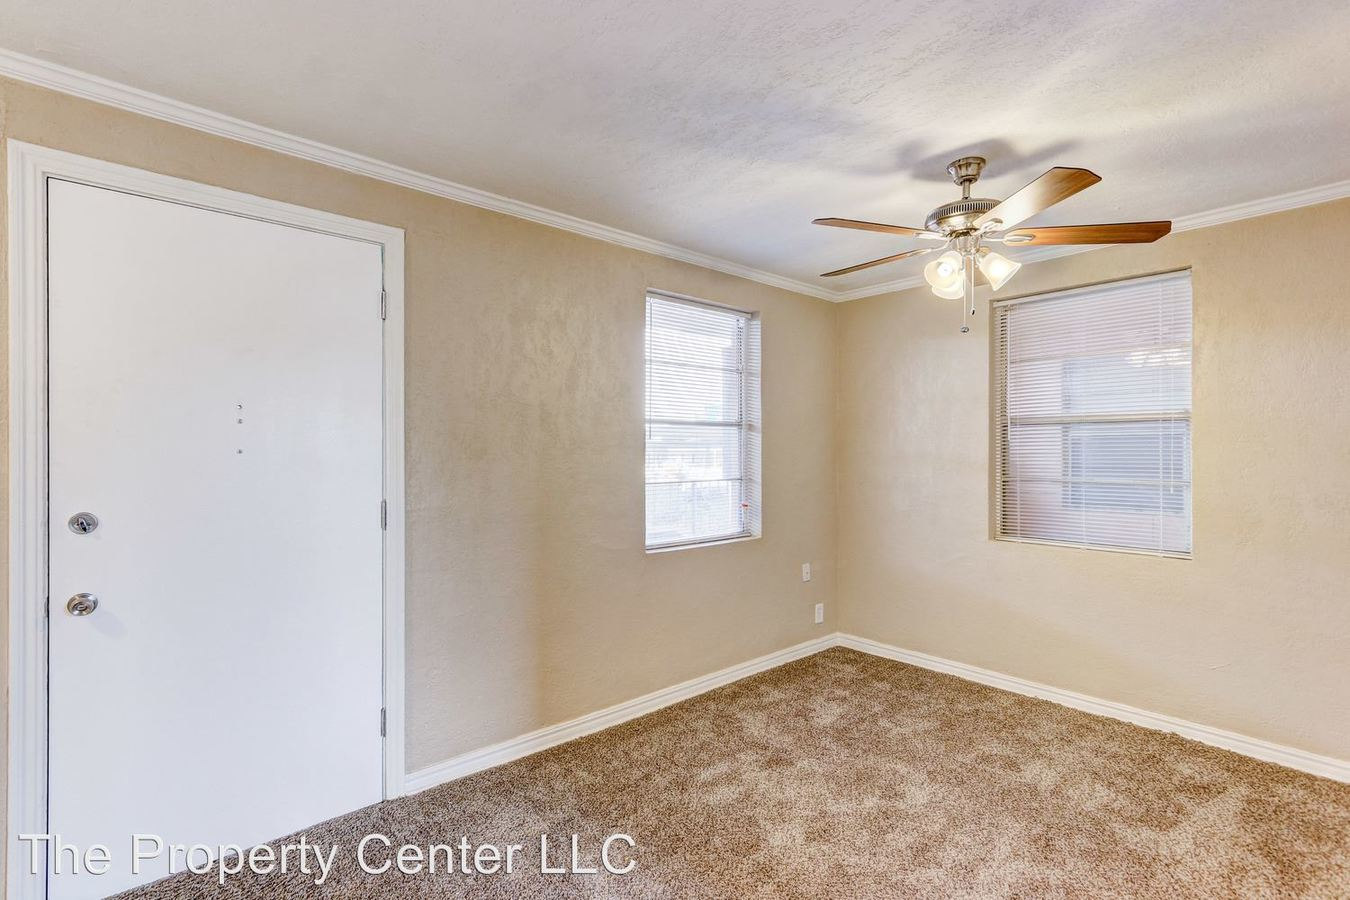 1 Bedroom 1 Bathroom Apartment for rent at 3131 N May Ave in Oklahoma City, OK